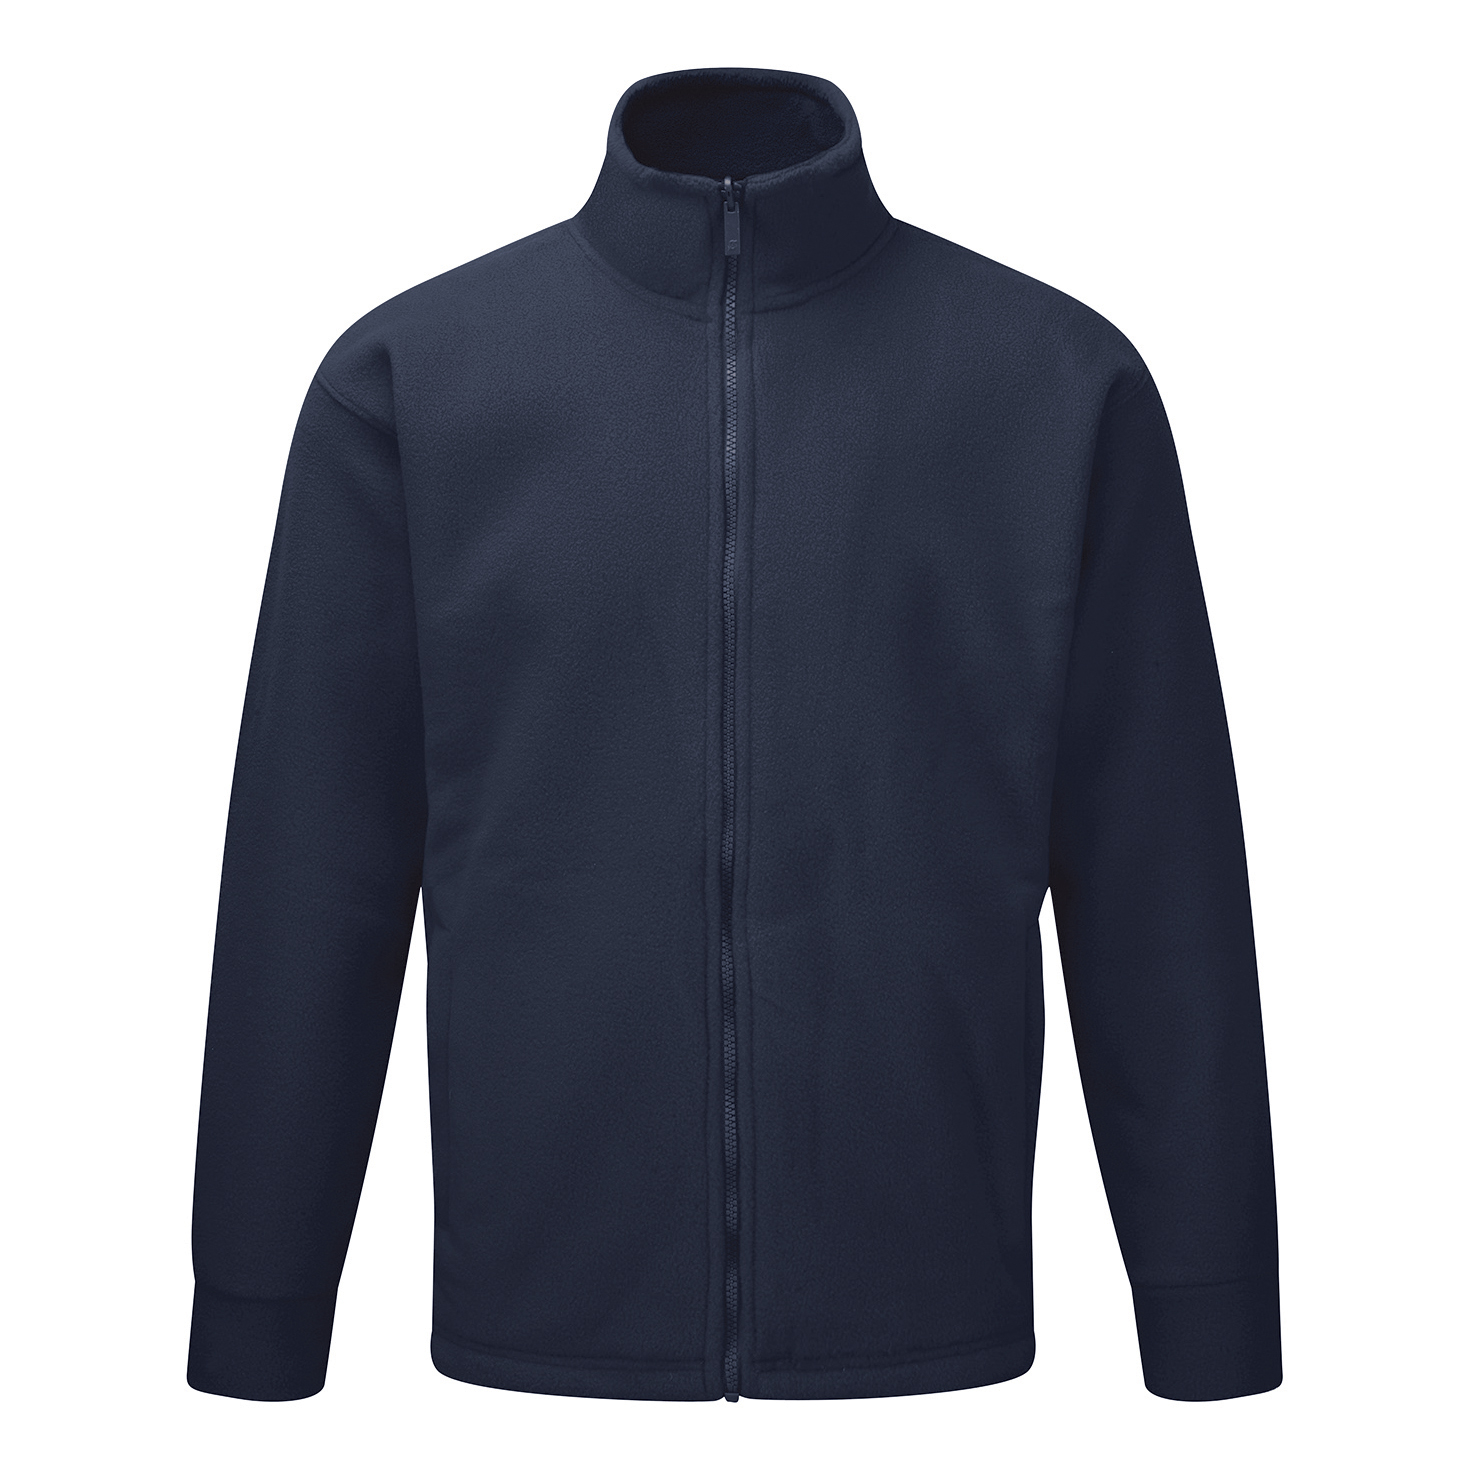 ST Basic Fleece Jacket Elasticated Cuffs and Full Zip Front Large Navy Ref 59093 *Approx 3 Day Leadtime*